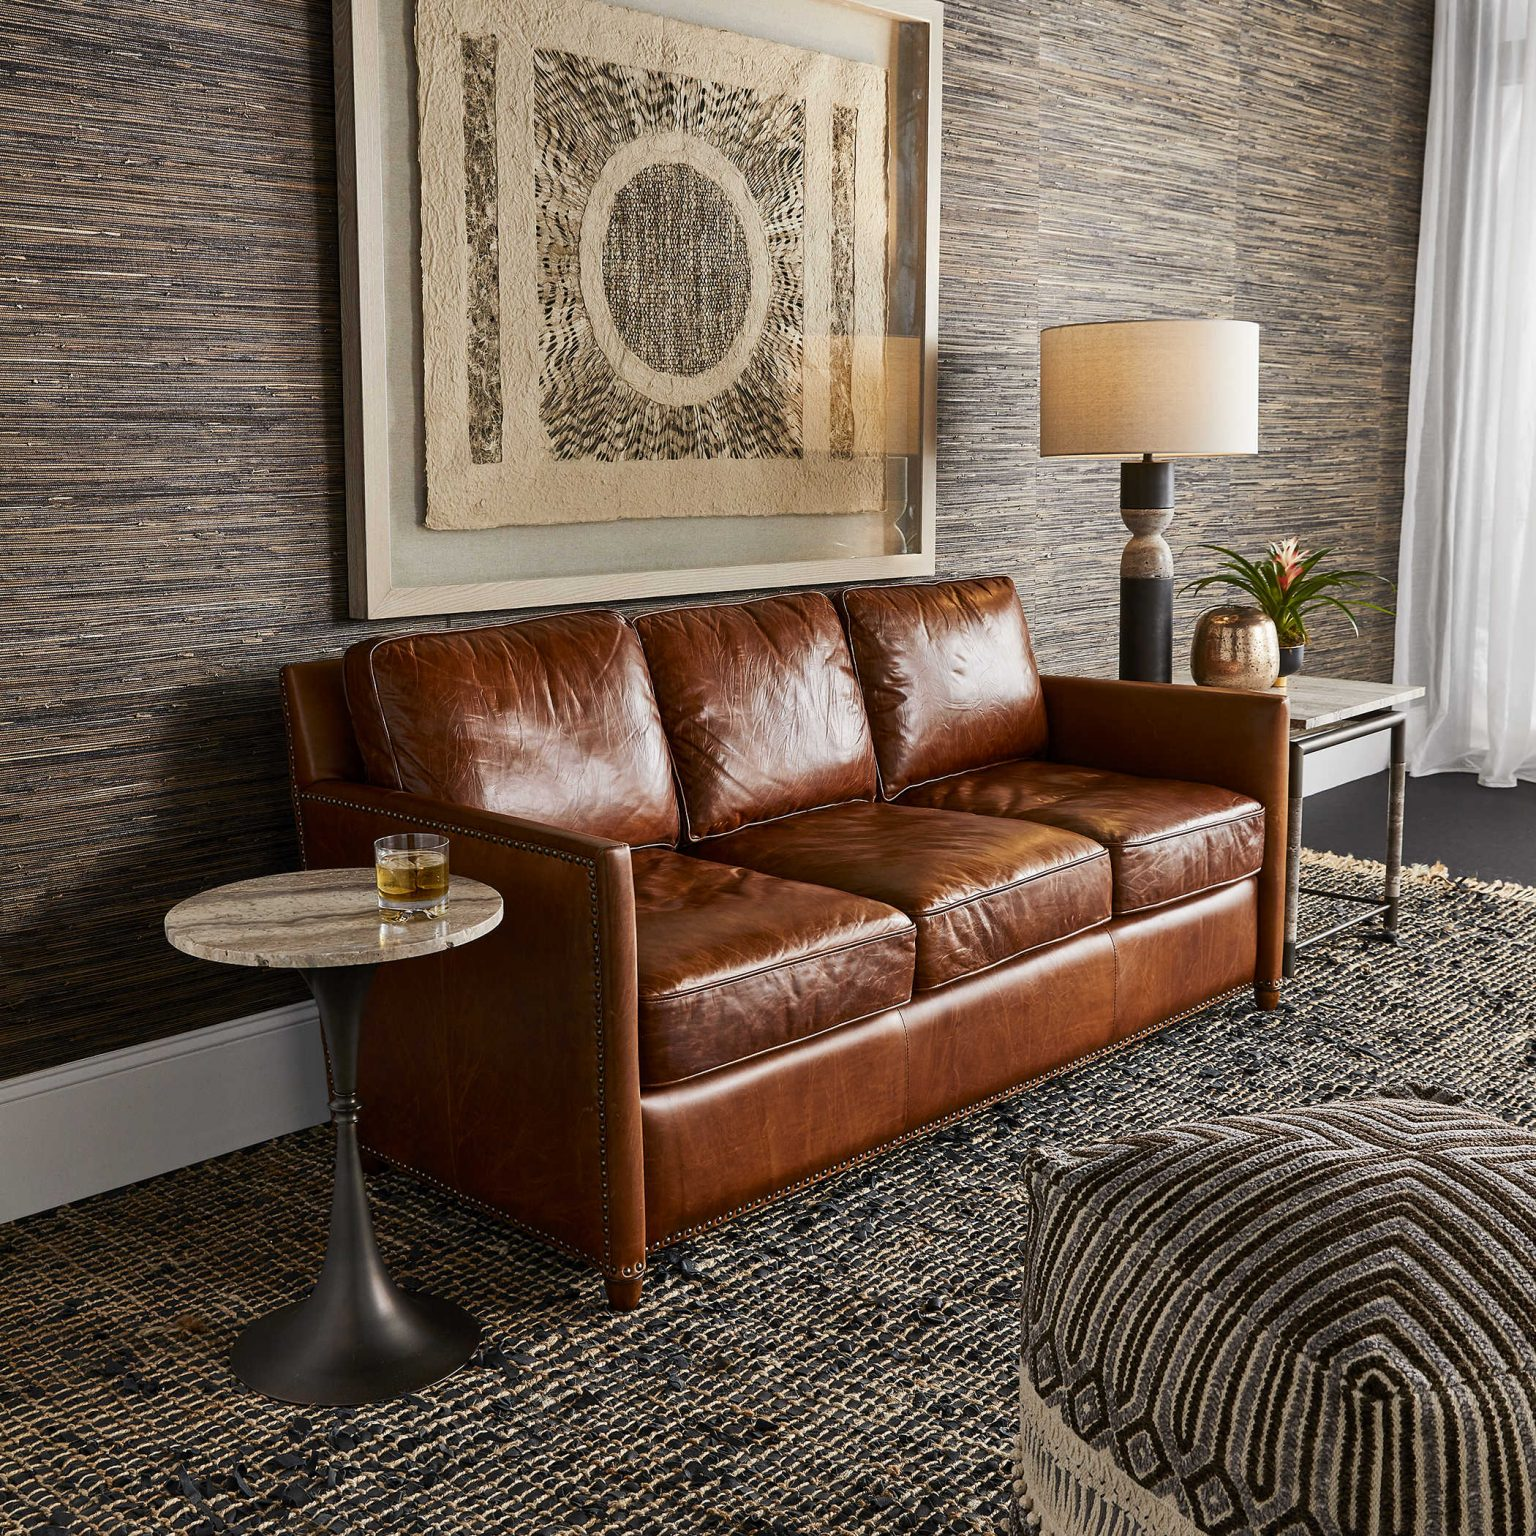 Masculine, leather padded sofa in a chic nostalgic style